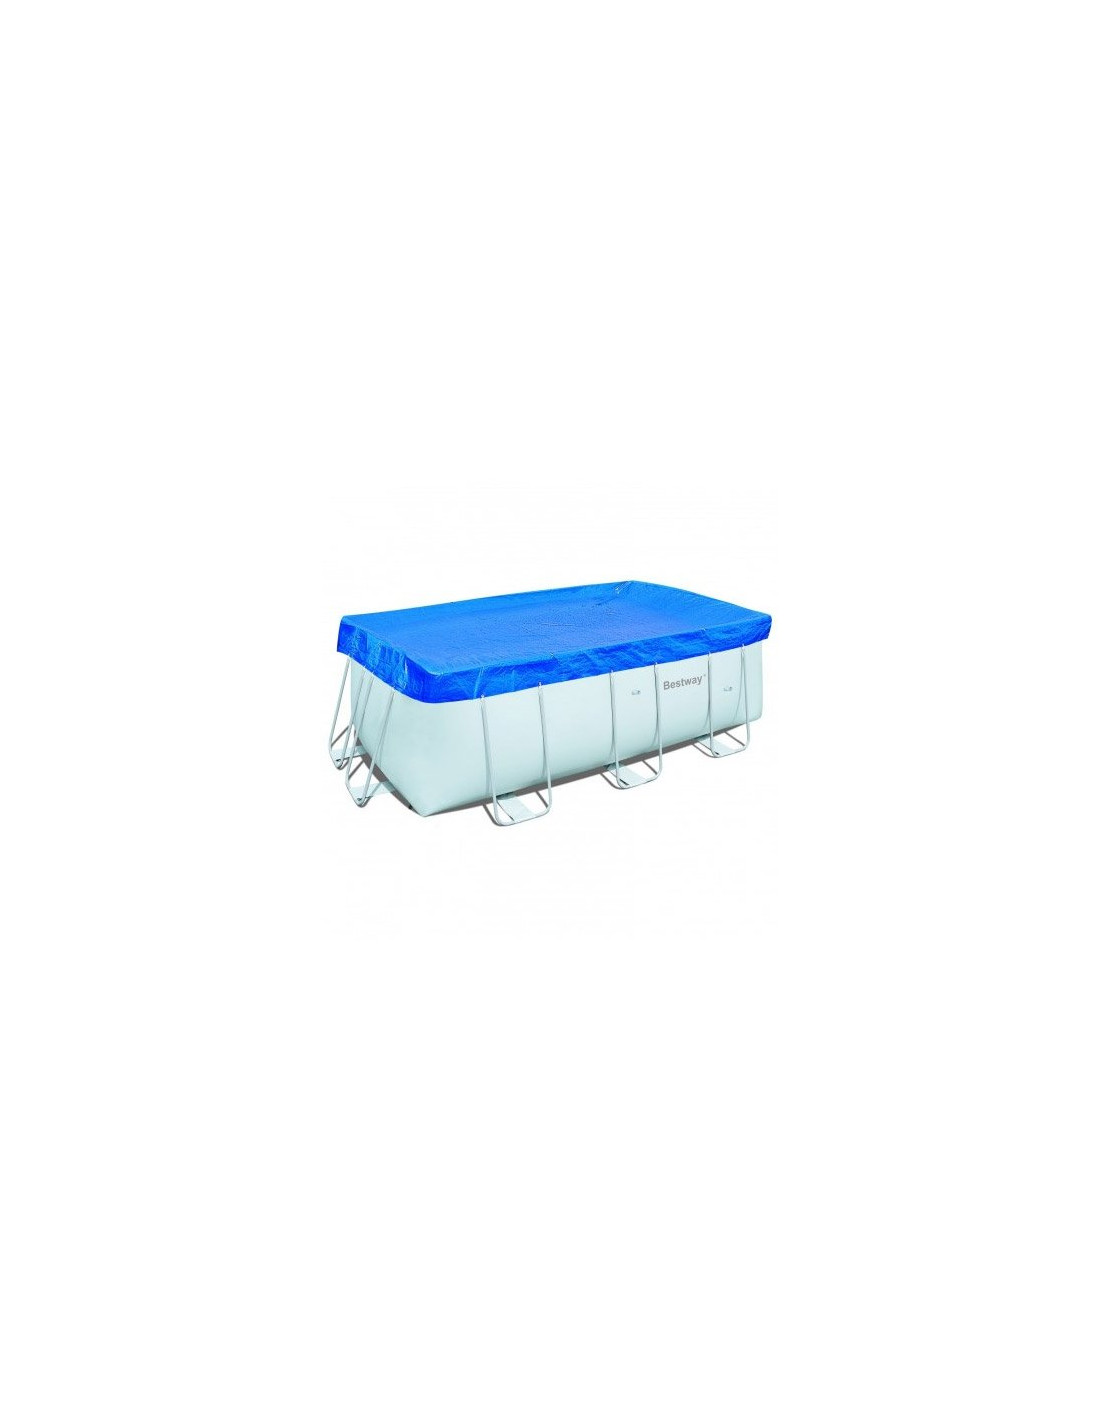 Bache hiver bestway piscine tubulaire home piscine for Piscine rectangulaire bestway